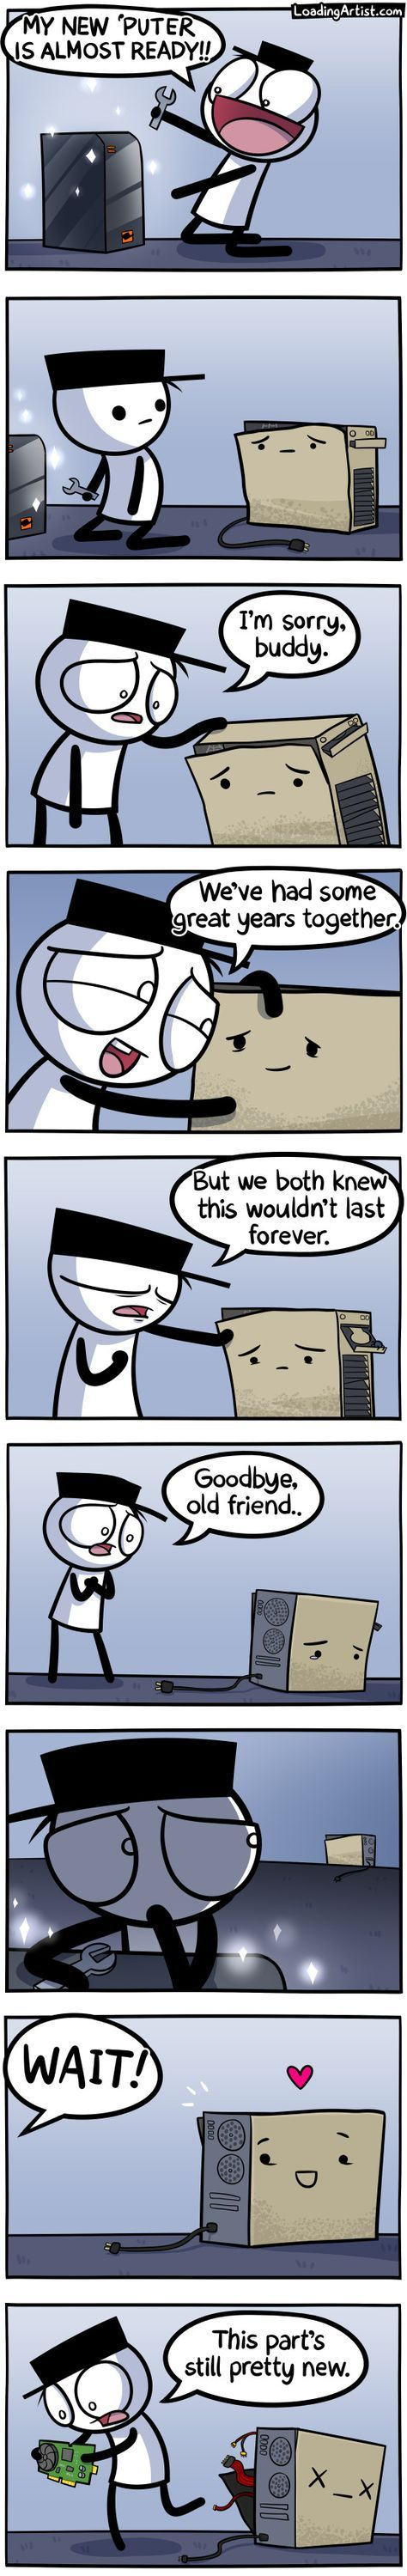 A comic about getting a new computer.. tap to see the full thing!